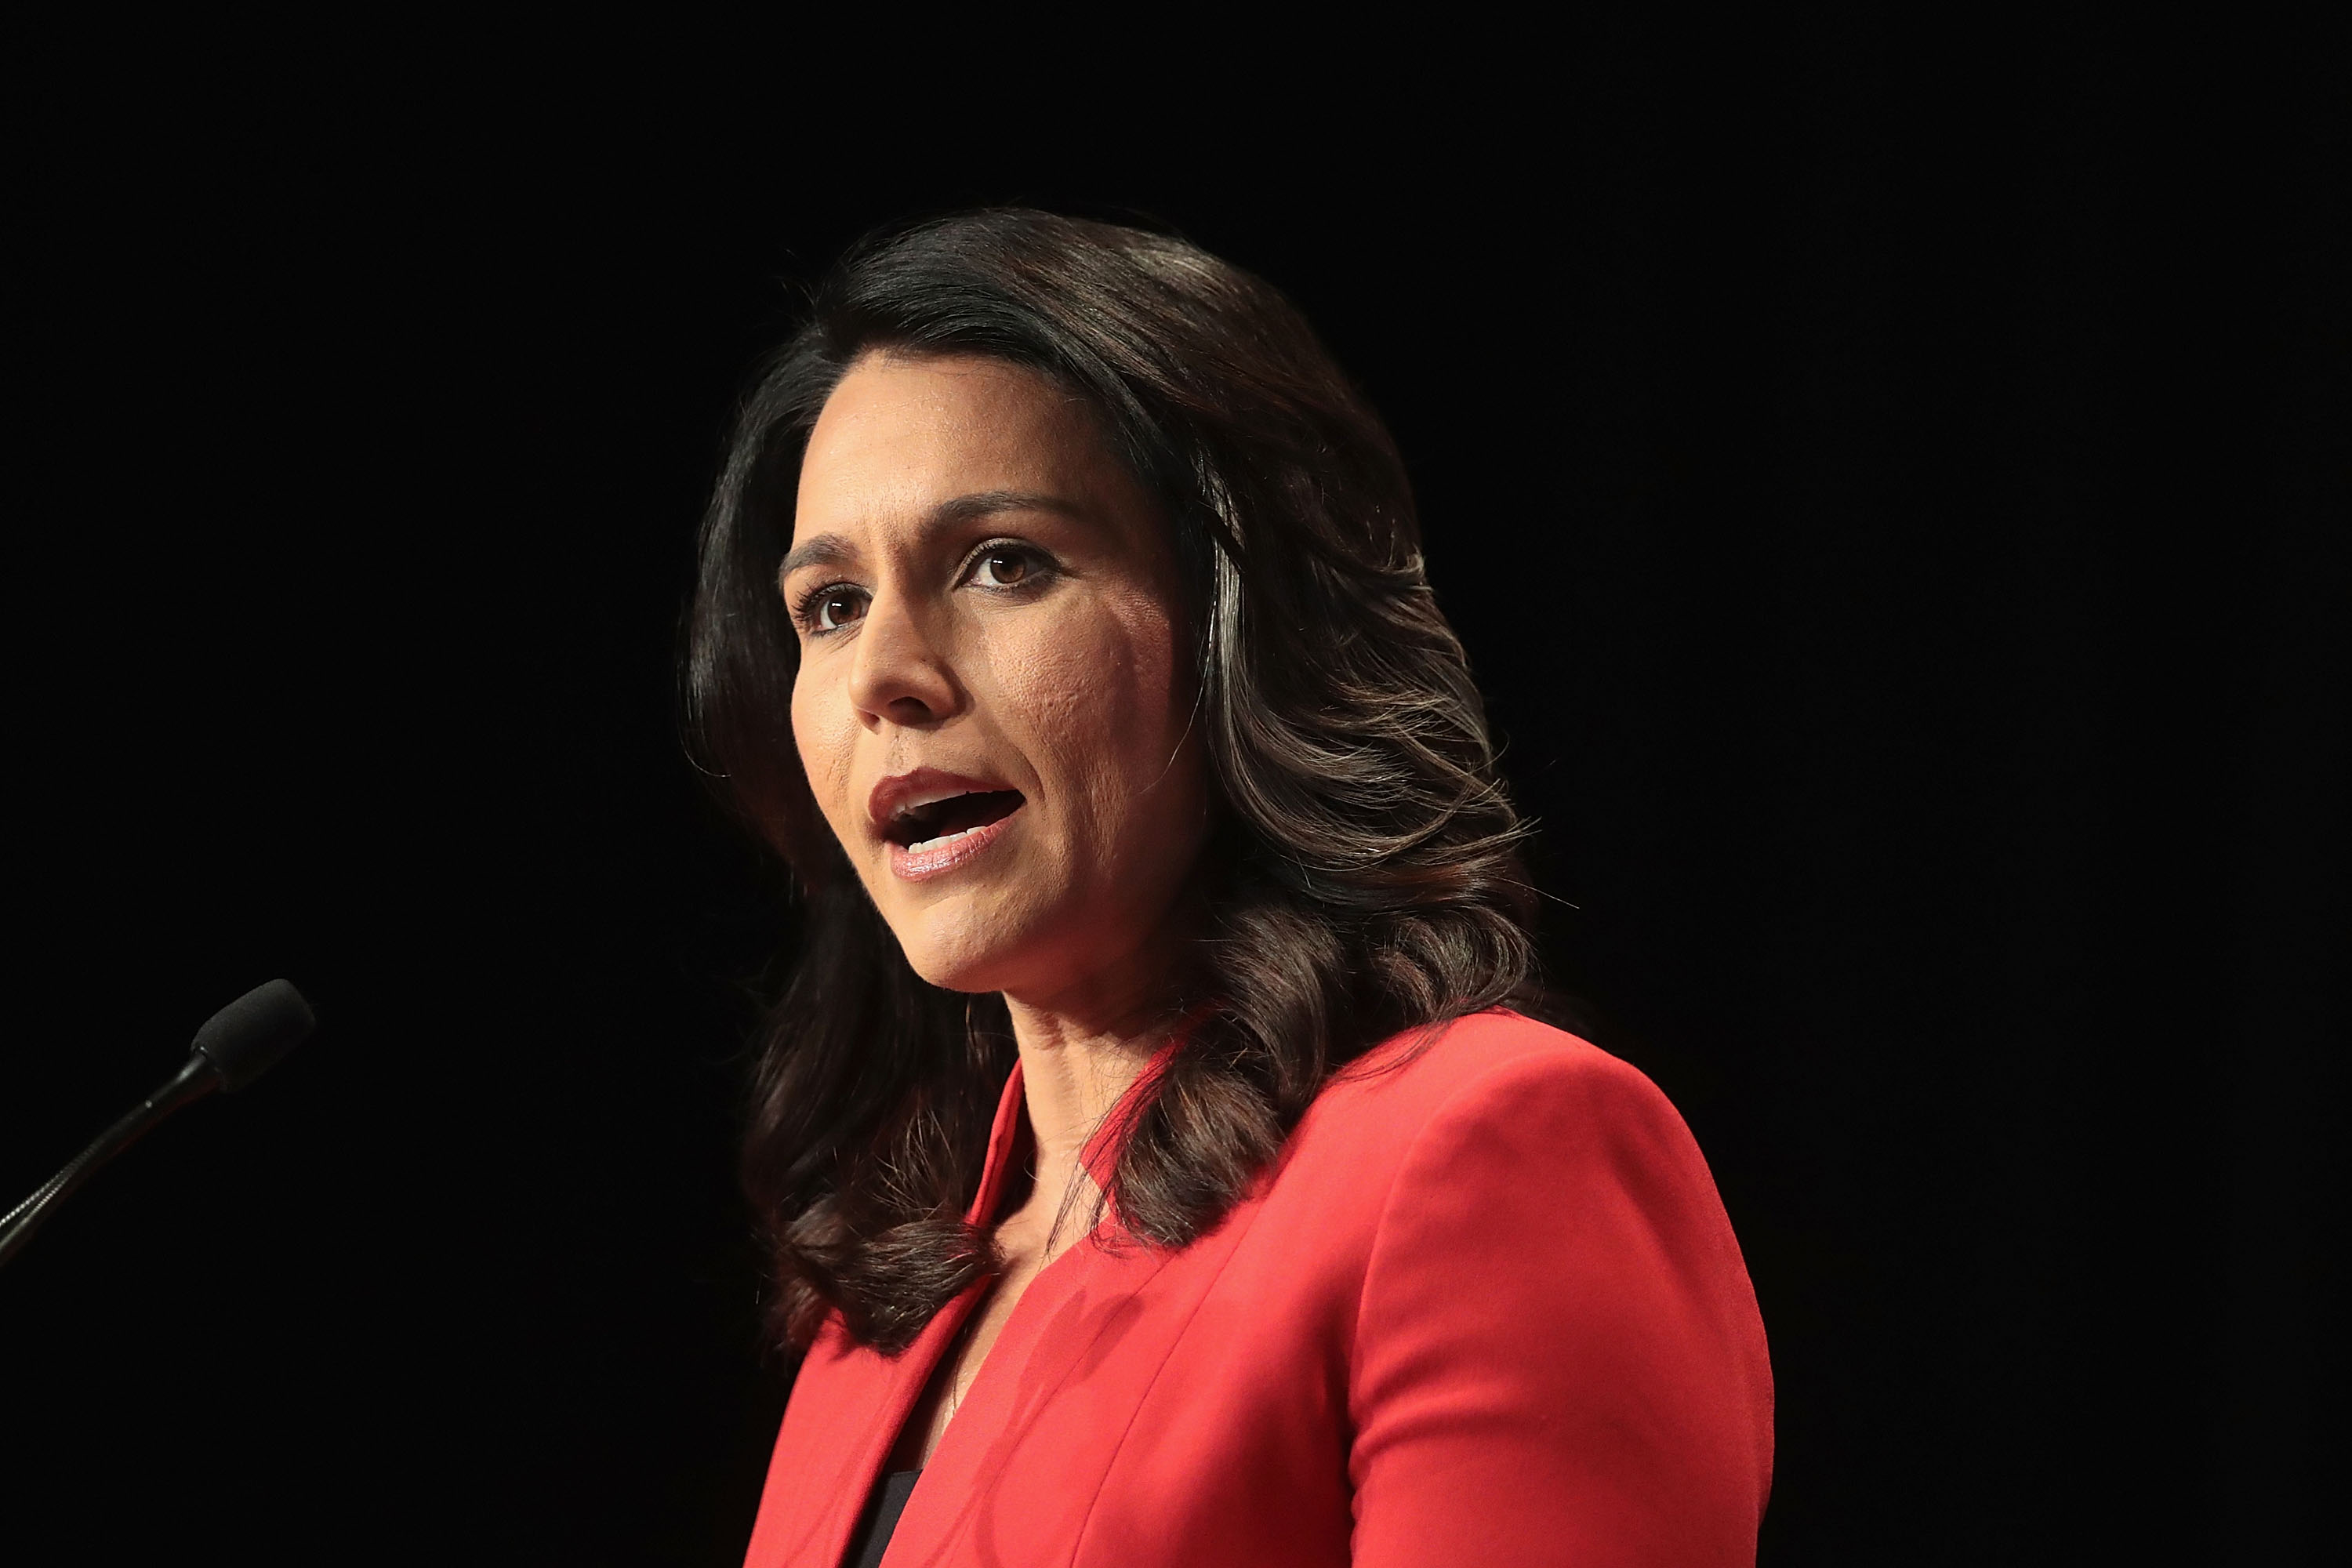 Tulsi Gabbard, the controversial, long-shot Democratic 2020 candidate, explained